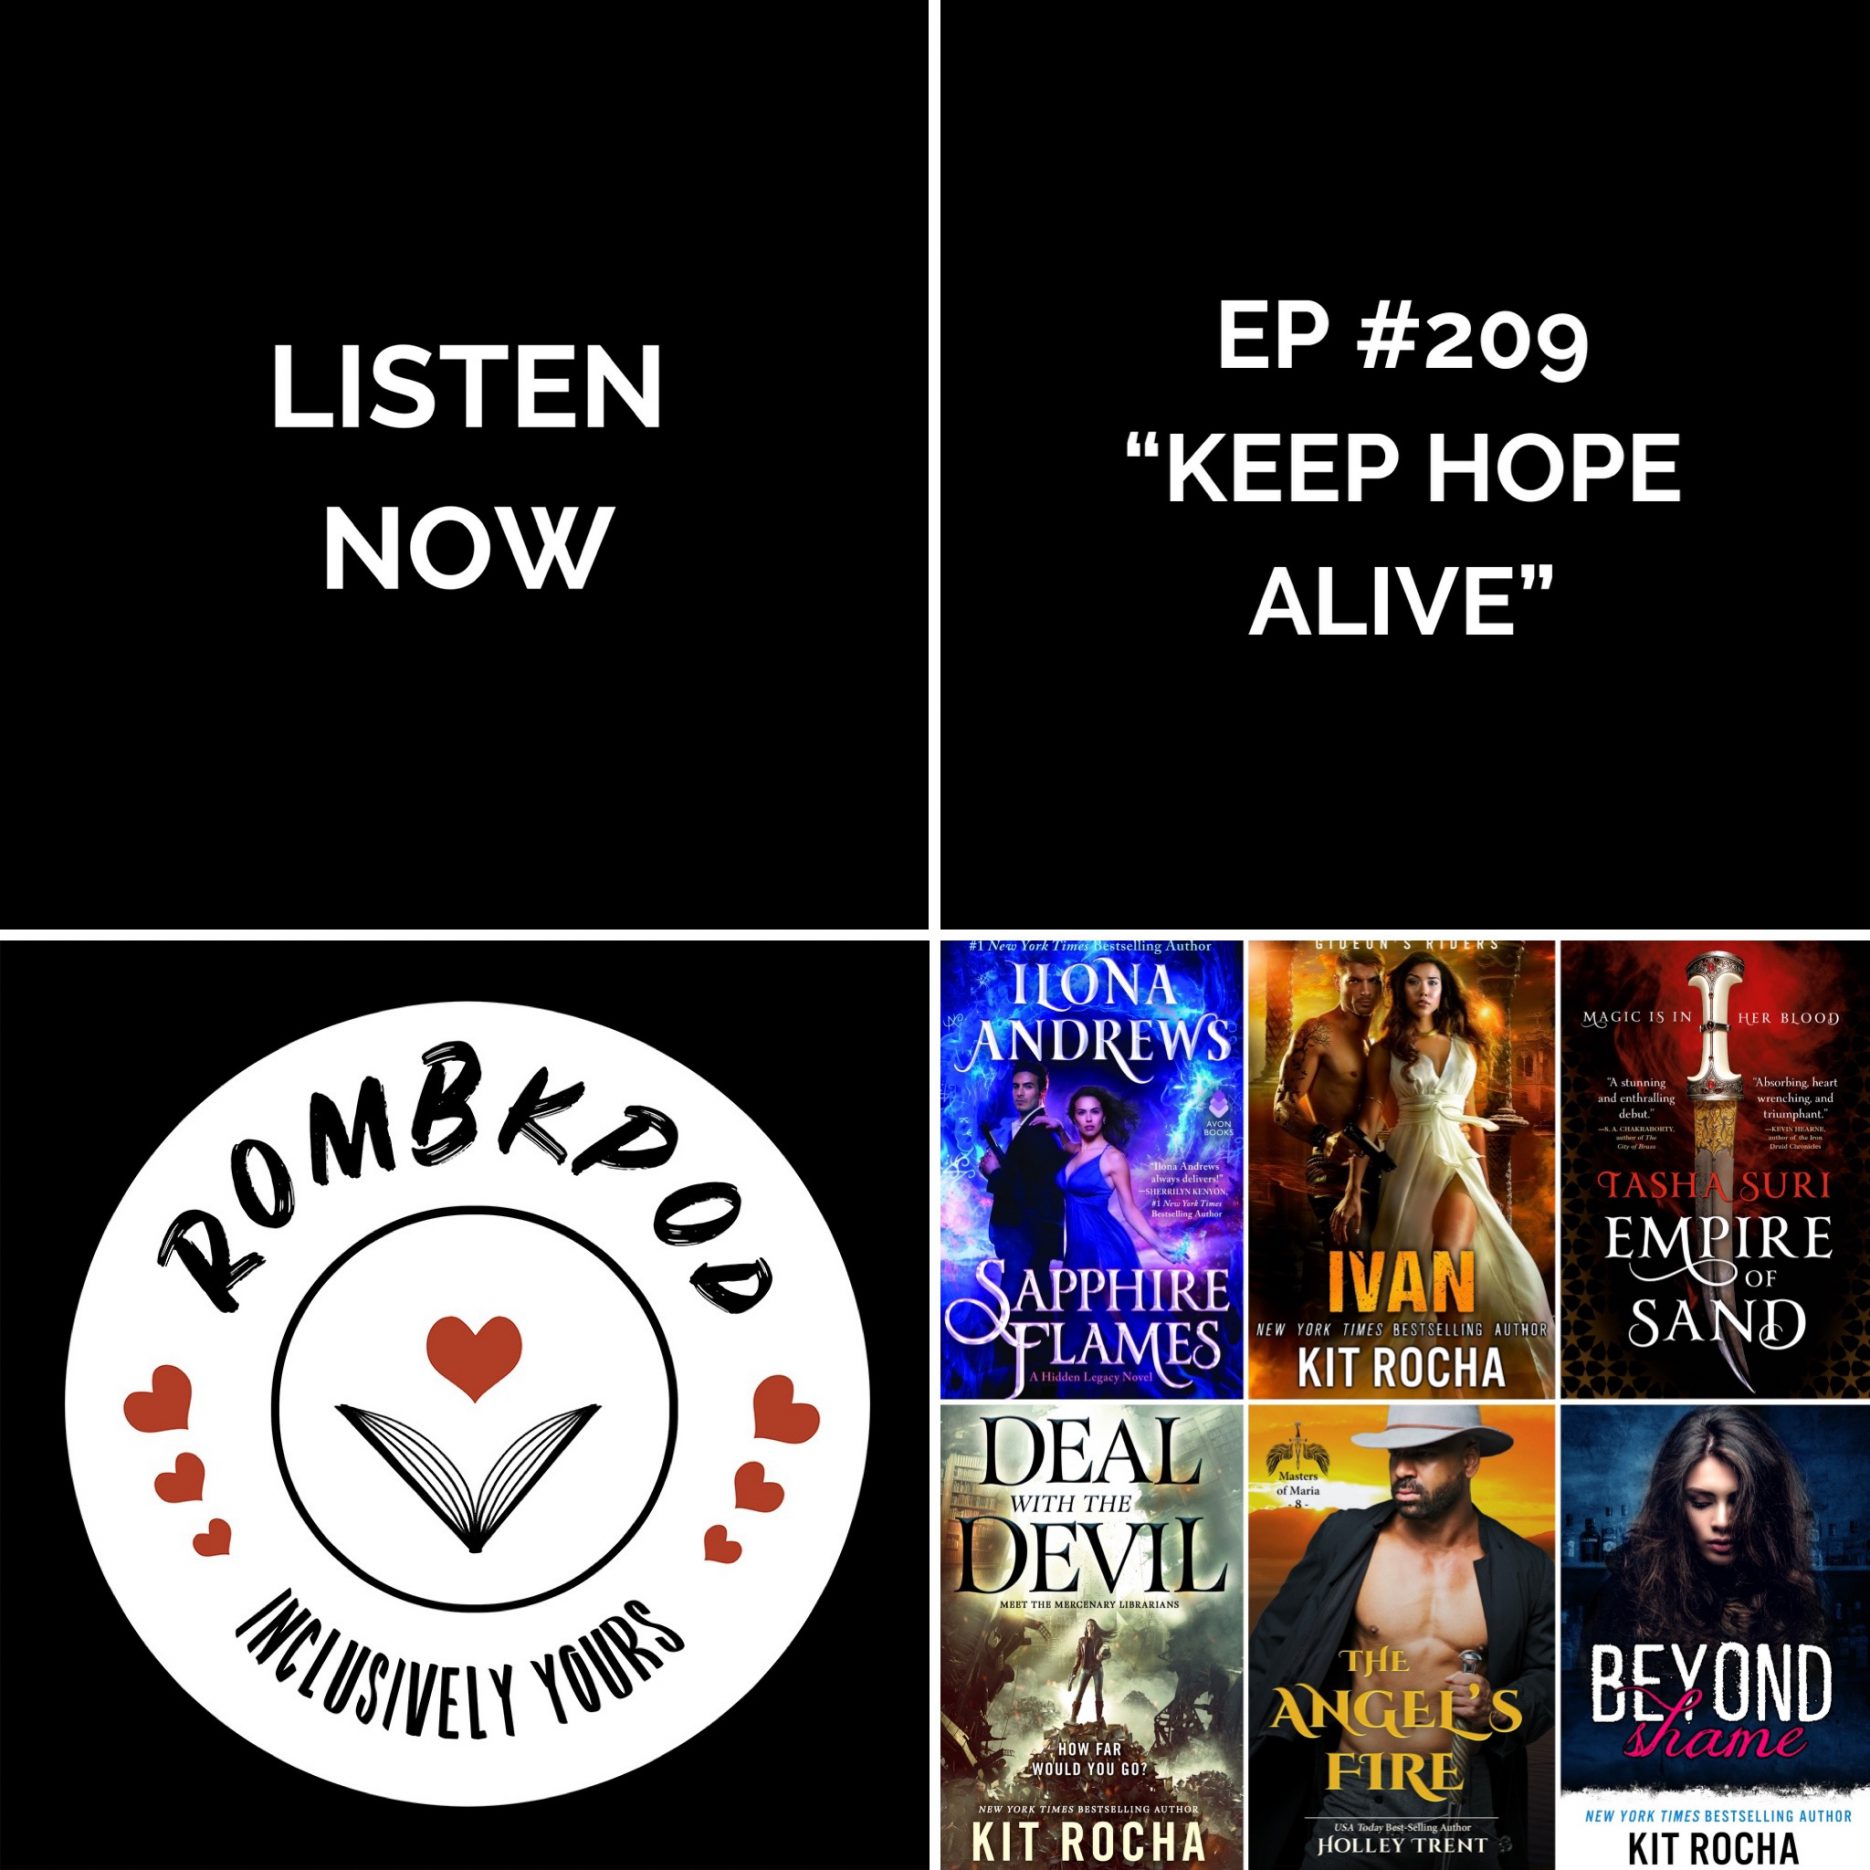 "IMAGE: lower left corner, RomBkPod heart logo; lower right corner, ep #209 cover collage; IMAGE TEXT: Listen Now, ep #209 ""Keep Hope Alive"""